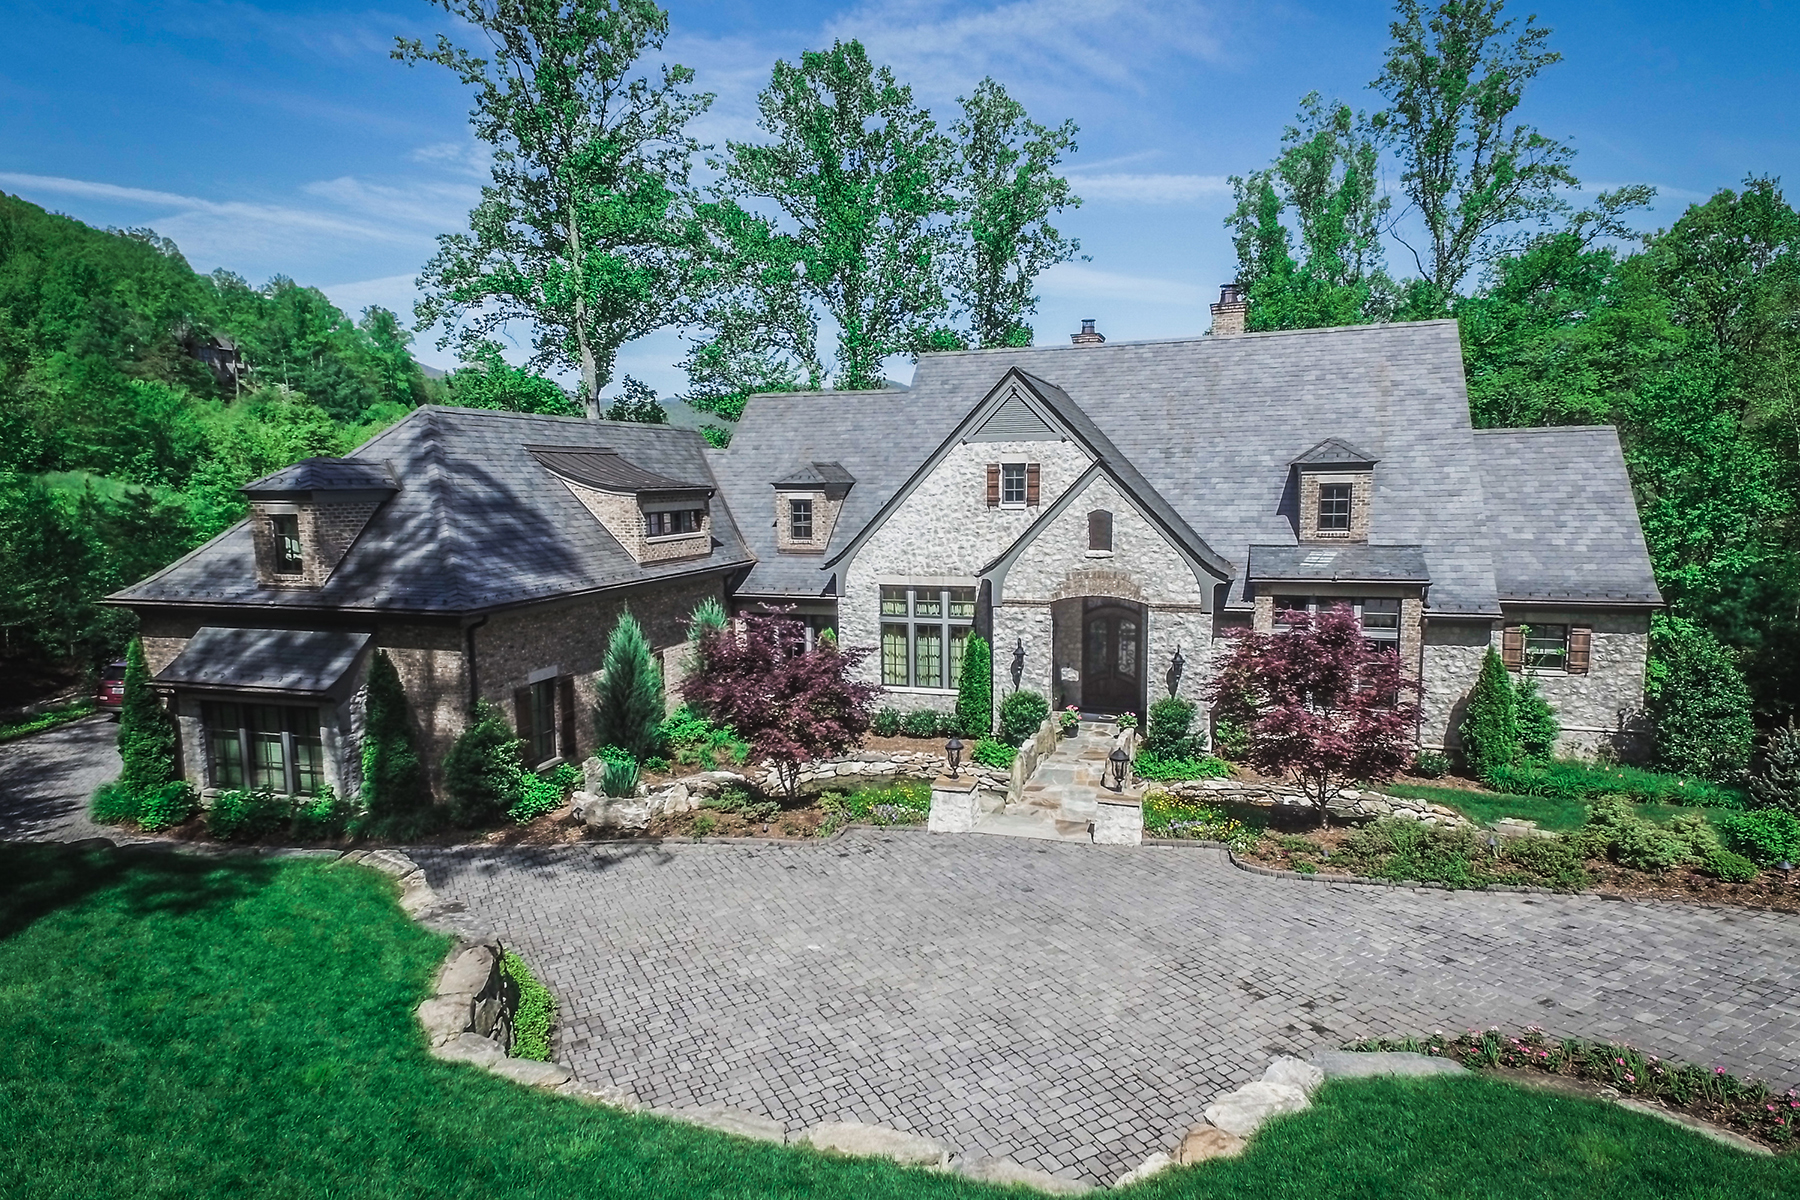 Single Family Home for Sale at CLIFFS AT WALNUT COVE 679 Walnut Valley Pkwy Arden, North Carolina, 28704 United StatesIn/Around: Asheville